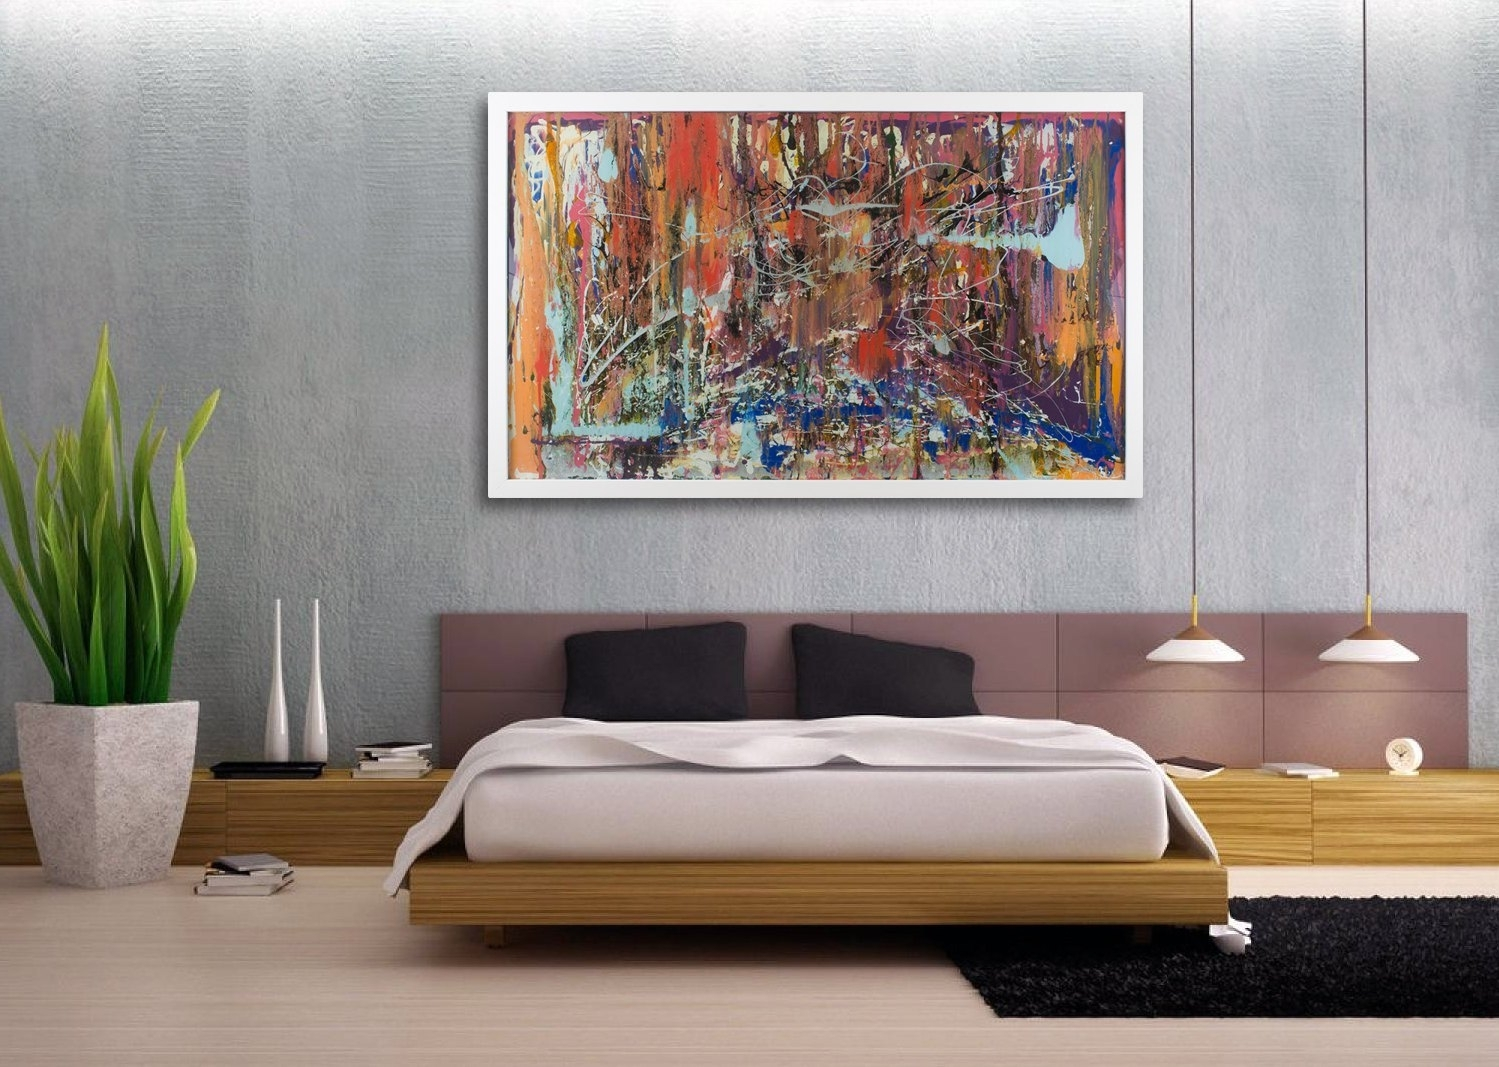 Congenial Bedroom Piece Wall Abstract Large Oil Paintingsmulti With 2018 Extra Large Canvas Abstract Wall Art (View 3 of 20)